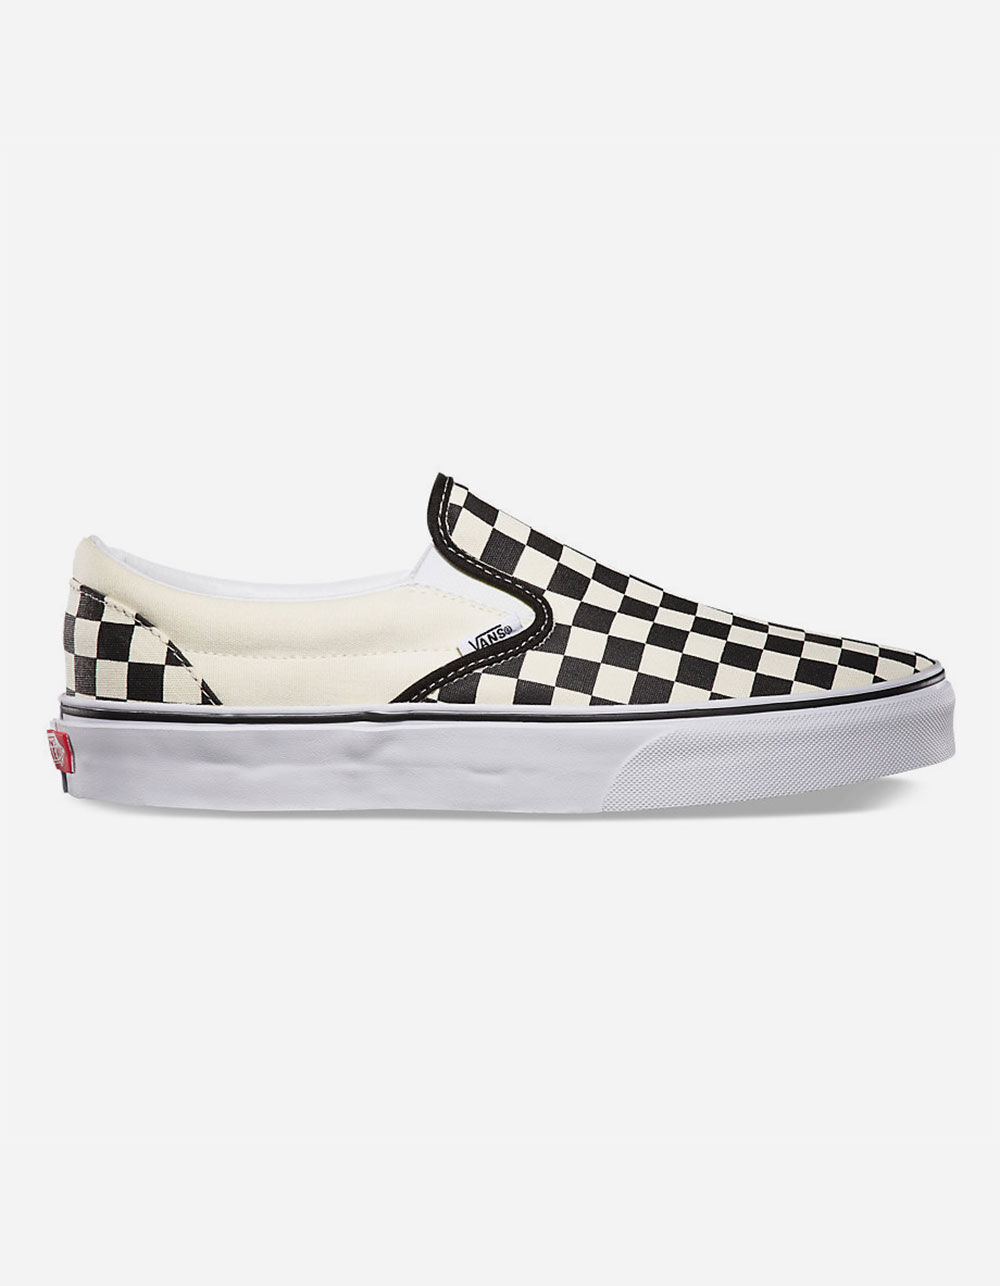 VANS CHECKERBOARD SLIP-ON BLACK & OFF WHITE SHOES